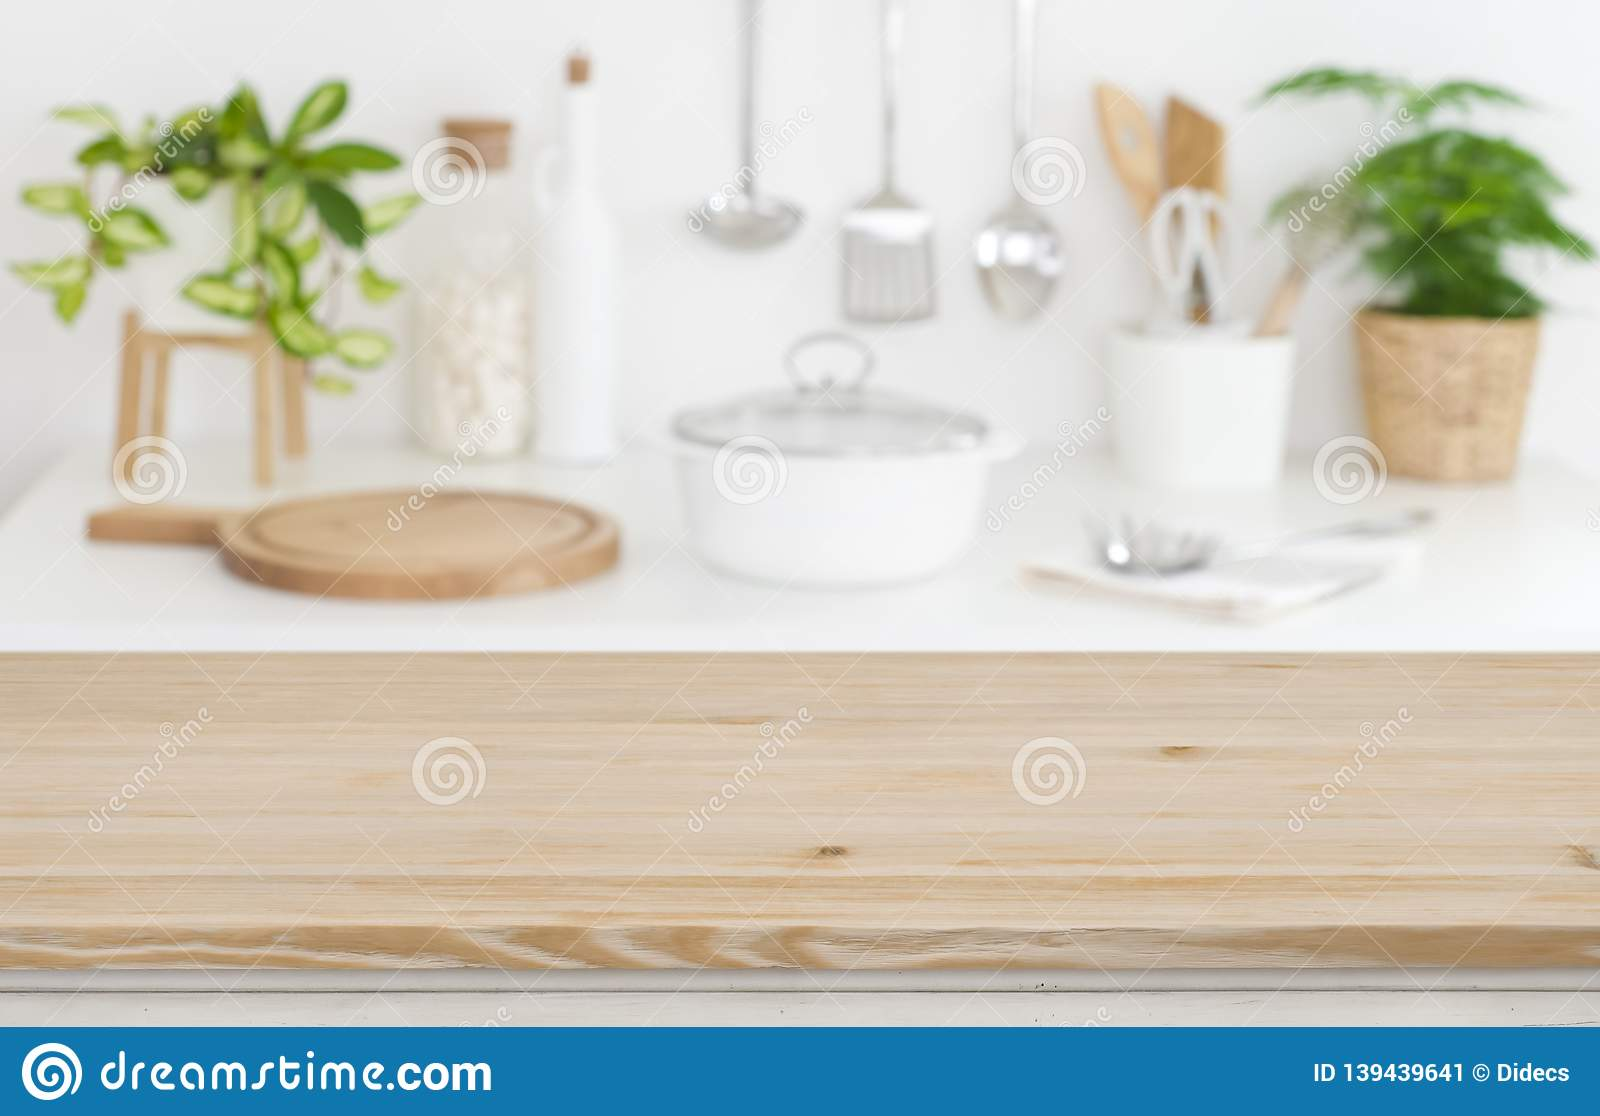 wooden table top on blurred kitchen counter background